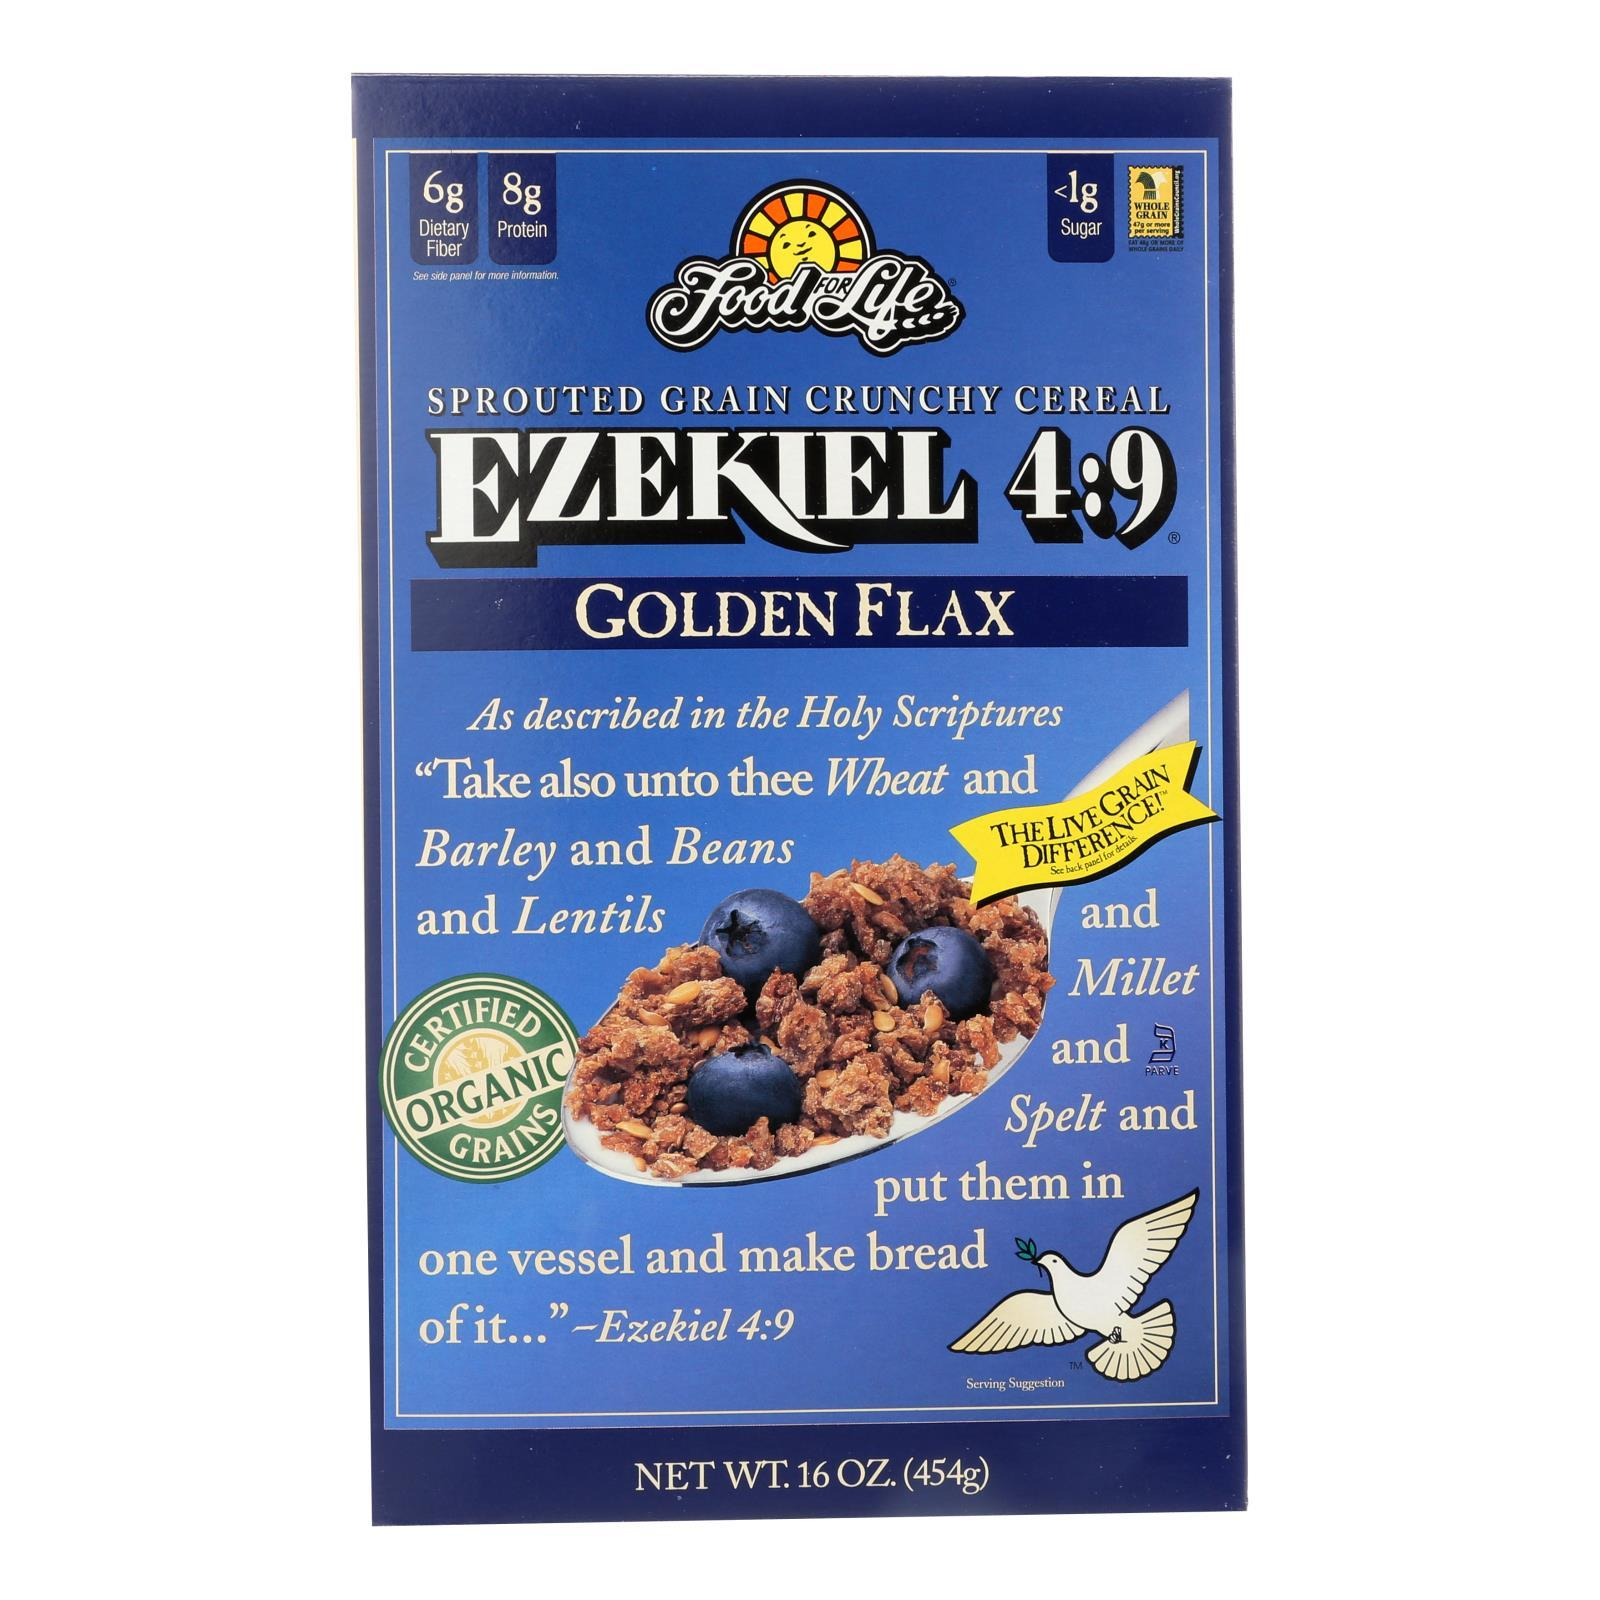 Food For Life Baking Co. Cereal - Organic - Ezekiel 4-9 - Sprouted Whole Grain - Golden Flax - 16 Oz - Case Of 6 - BeeGreen